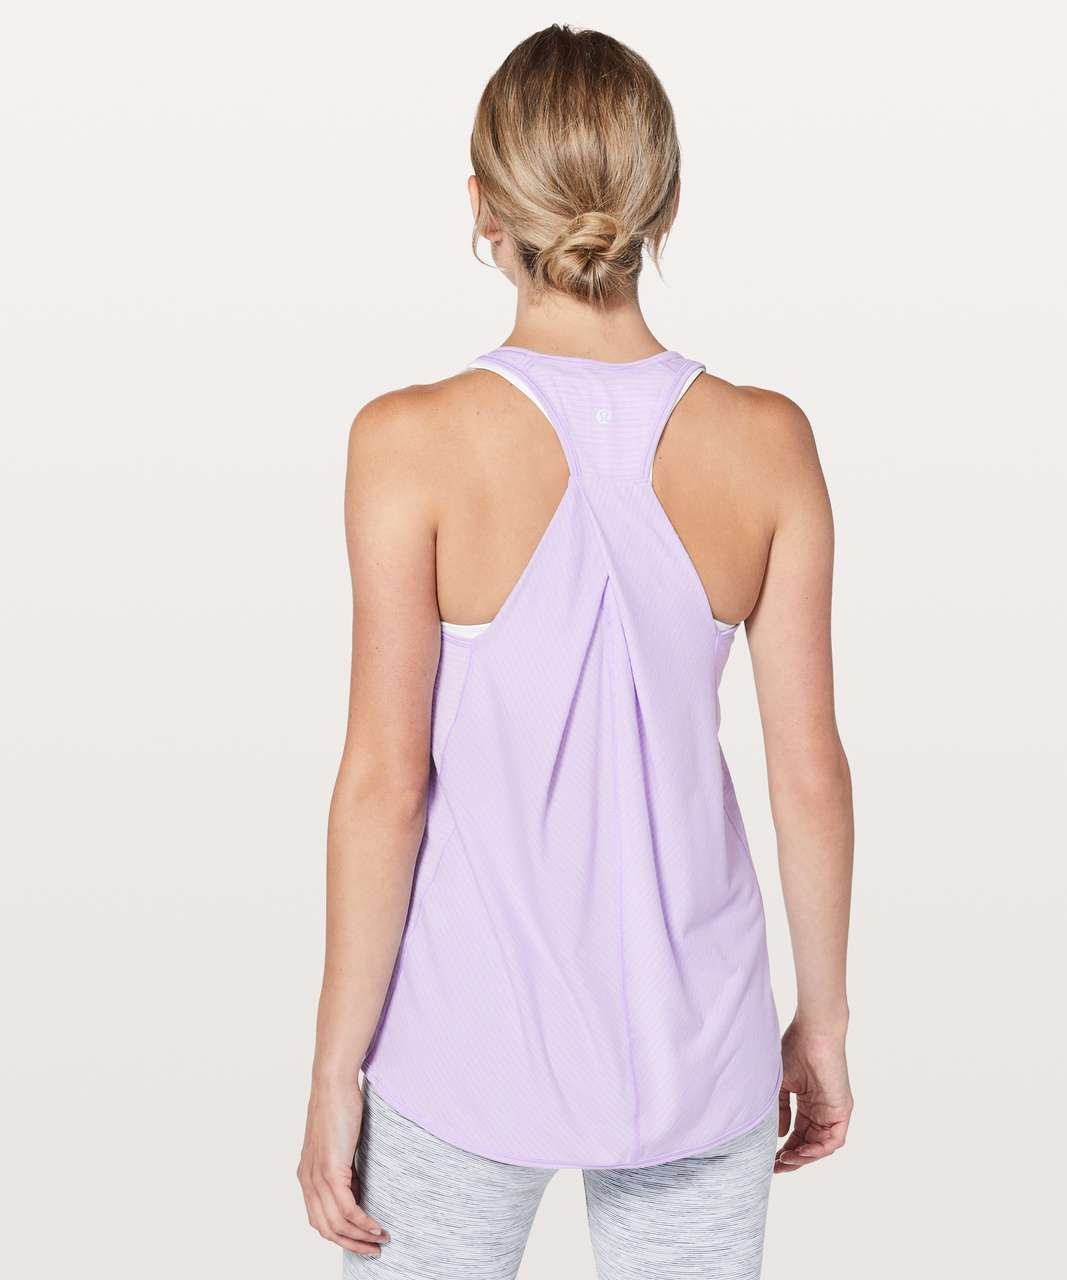 Lululemon Essential Tank - Heathered Sheer Violet